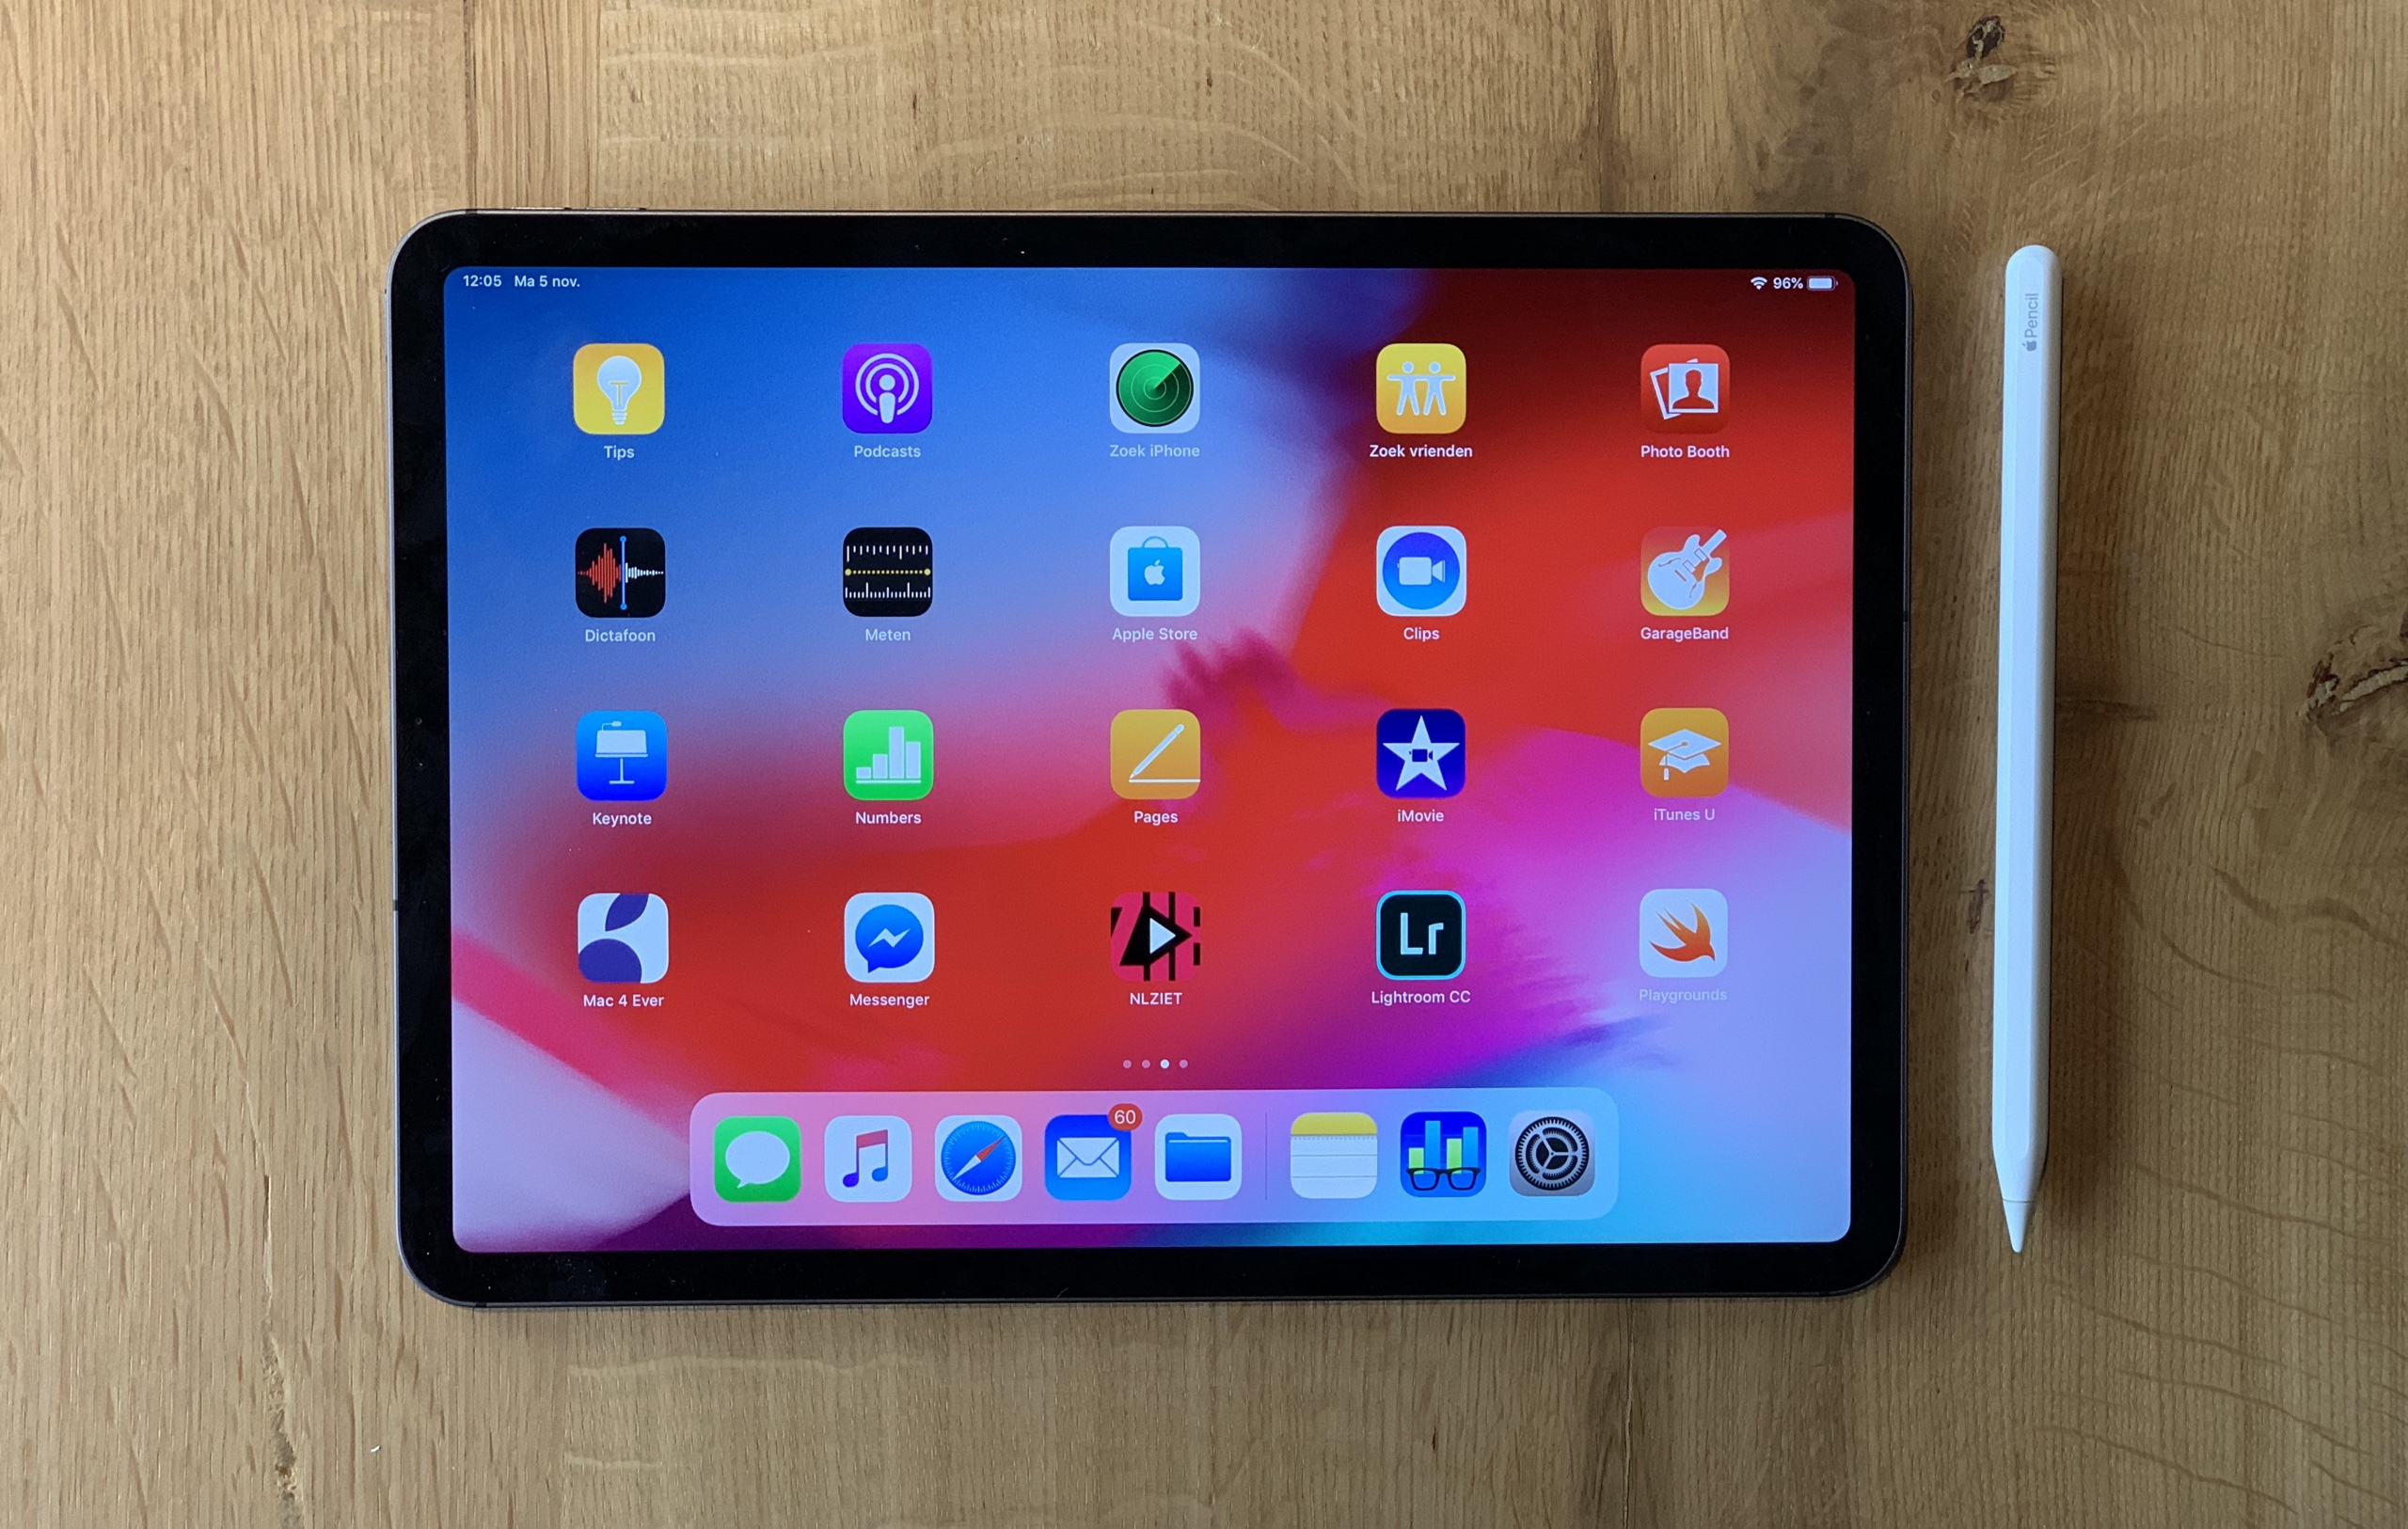 Grote Tablet Ipad Pro 2018 Review Een Grote Stap Richting Perfectie Want